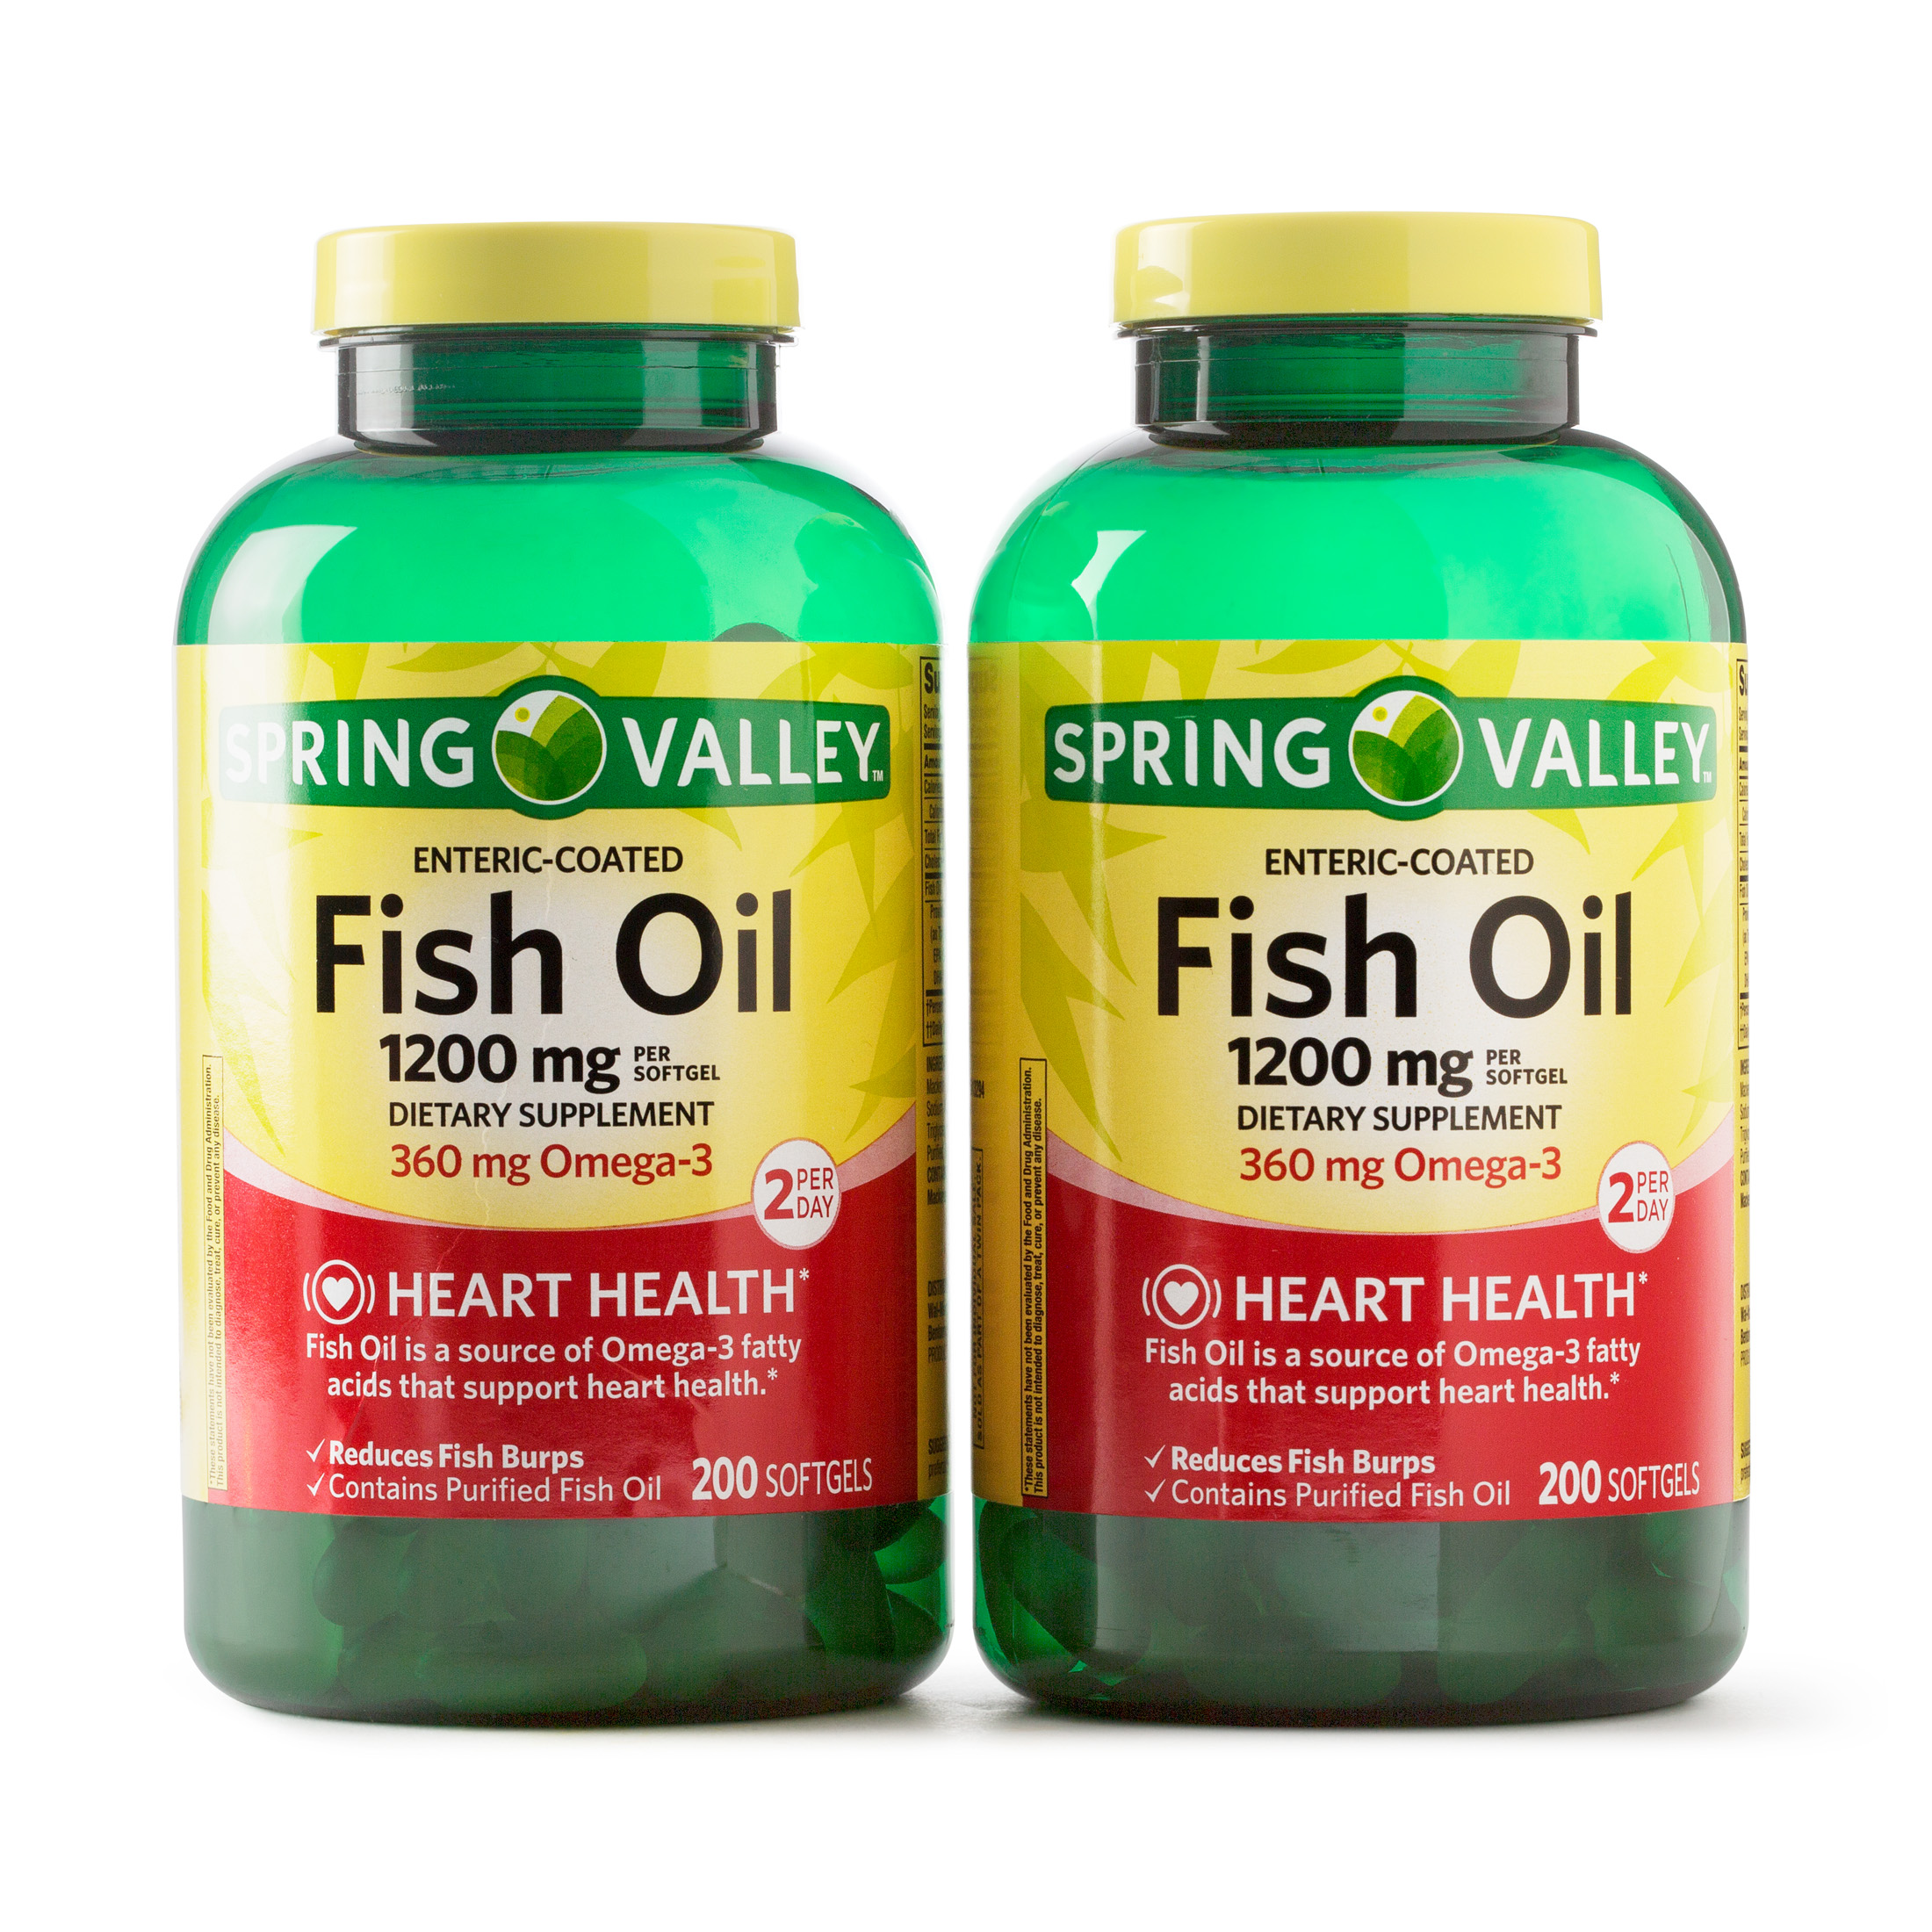 Spring Valley Enteric-Coated Fish Oil Omega-3 Softgels, 1200 Mg, 400 Ct, Twin Pack